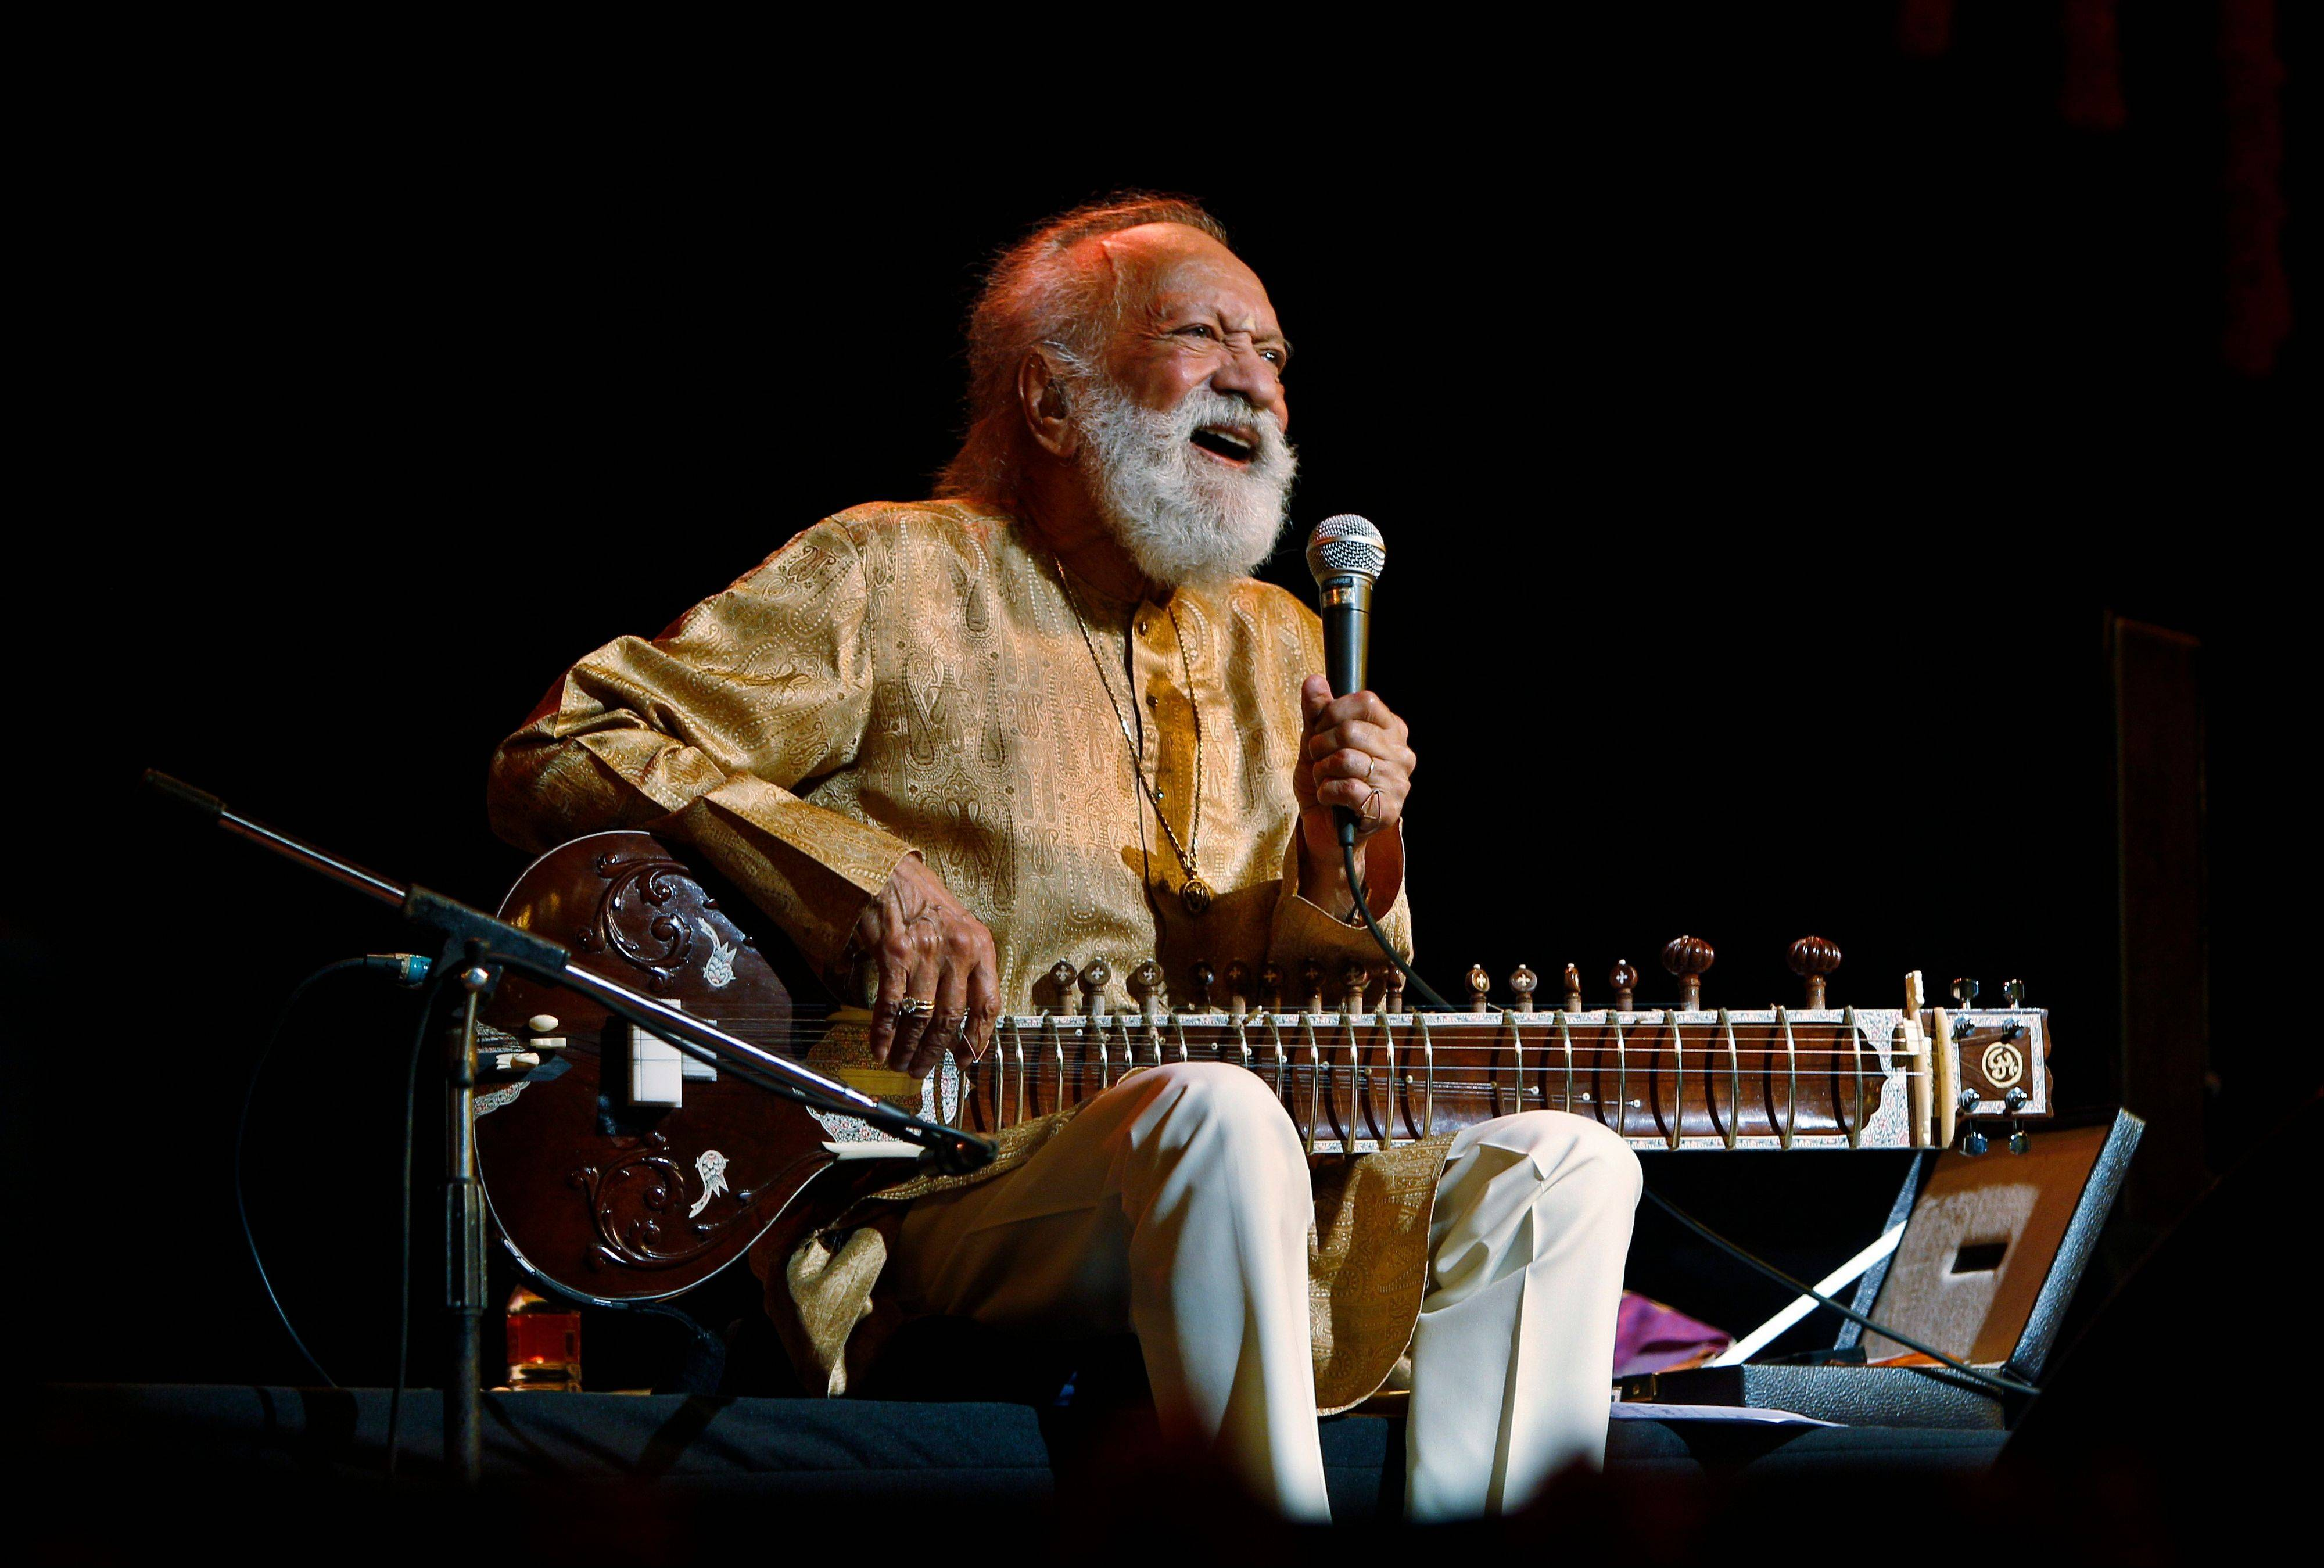 Indian musician Ravi Shankar, the sitar virtuoso who became a hippie musical icon of the 1960s after hobnobbing with the Beatles and who introduced traditional Indian ragas to Western audiences over an eight-decade career, died on Dec. 11. He was 92.